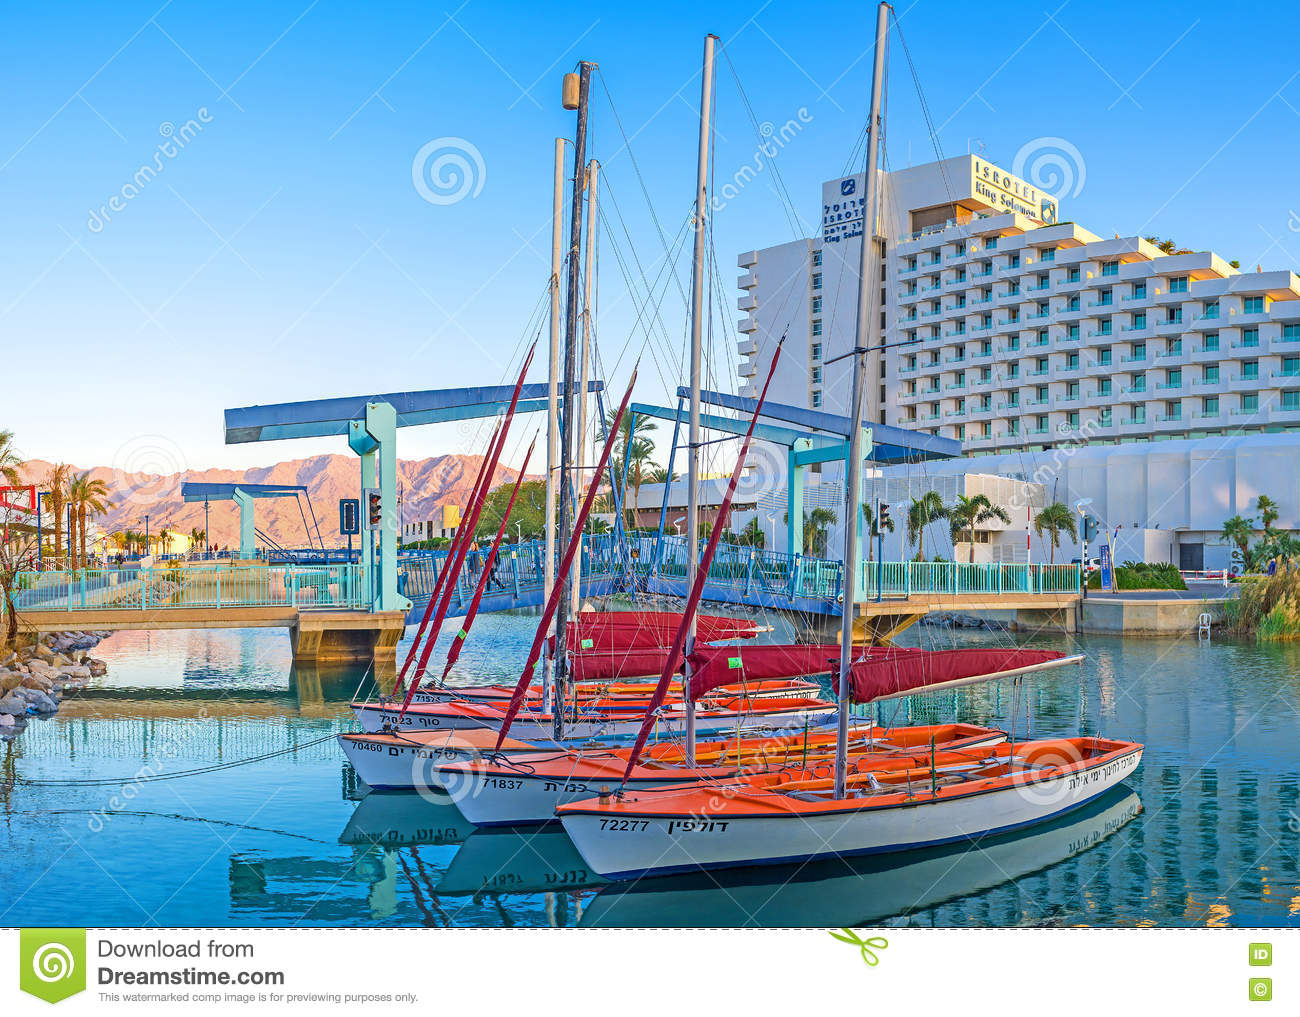 The yachting in Eilat